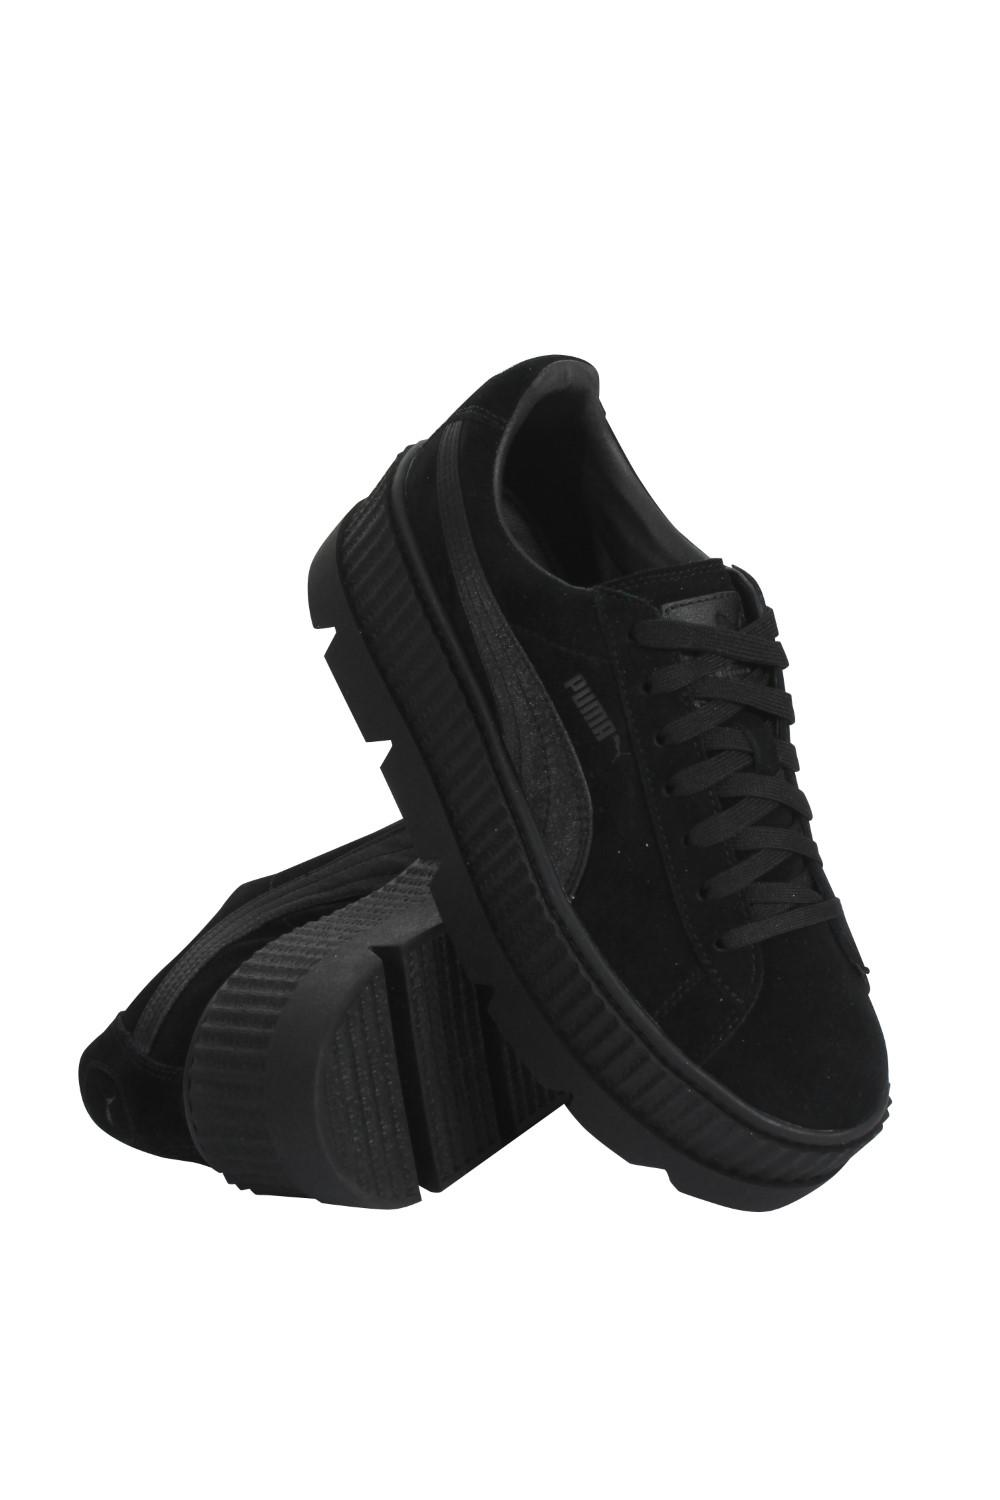 d10b700986a208 ... newest 0bf4e 6d2f6 Lyst - Puma X Fenty Cleated Creeper Suede in Black  ...